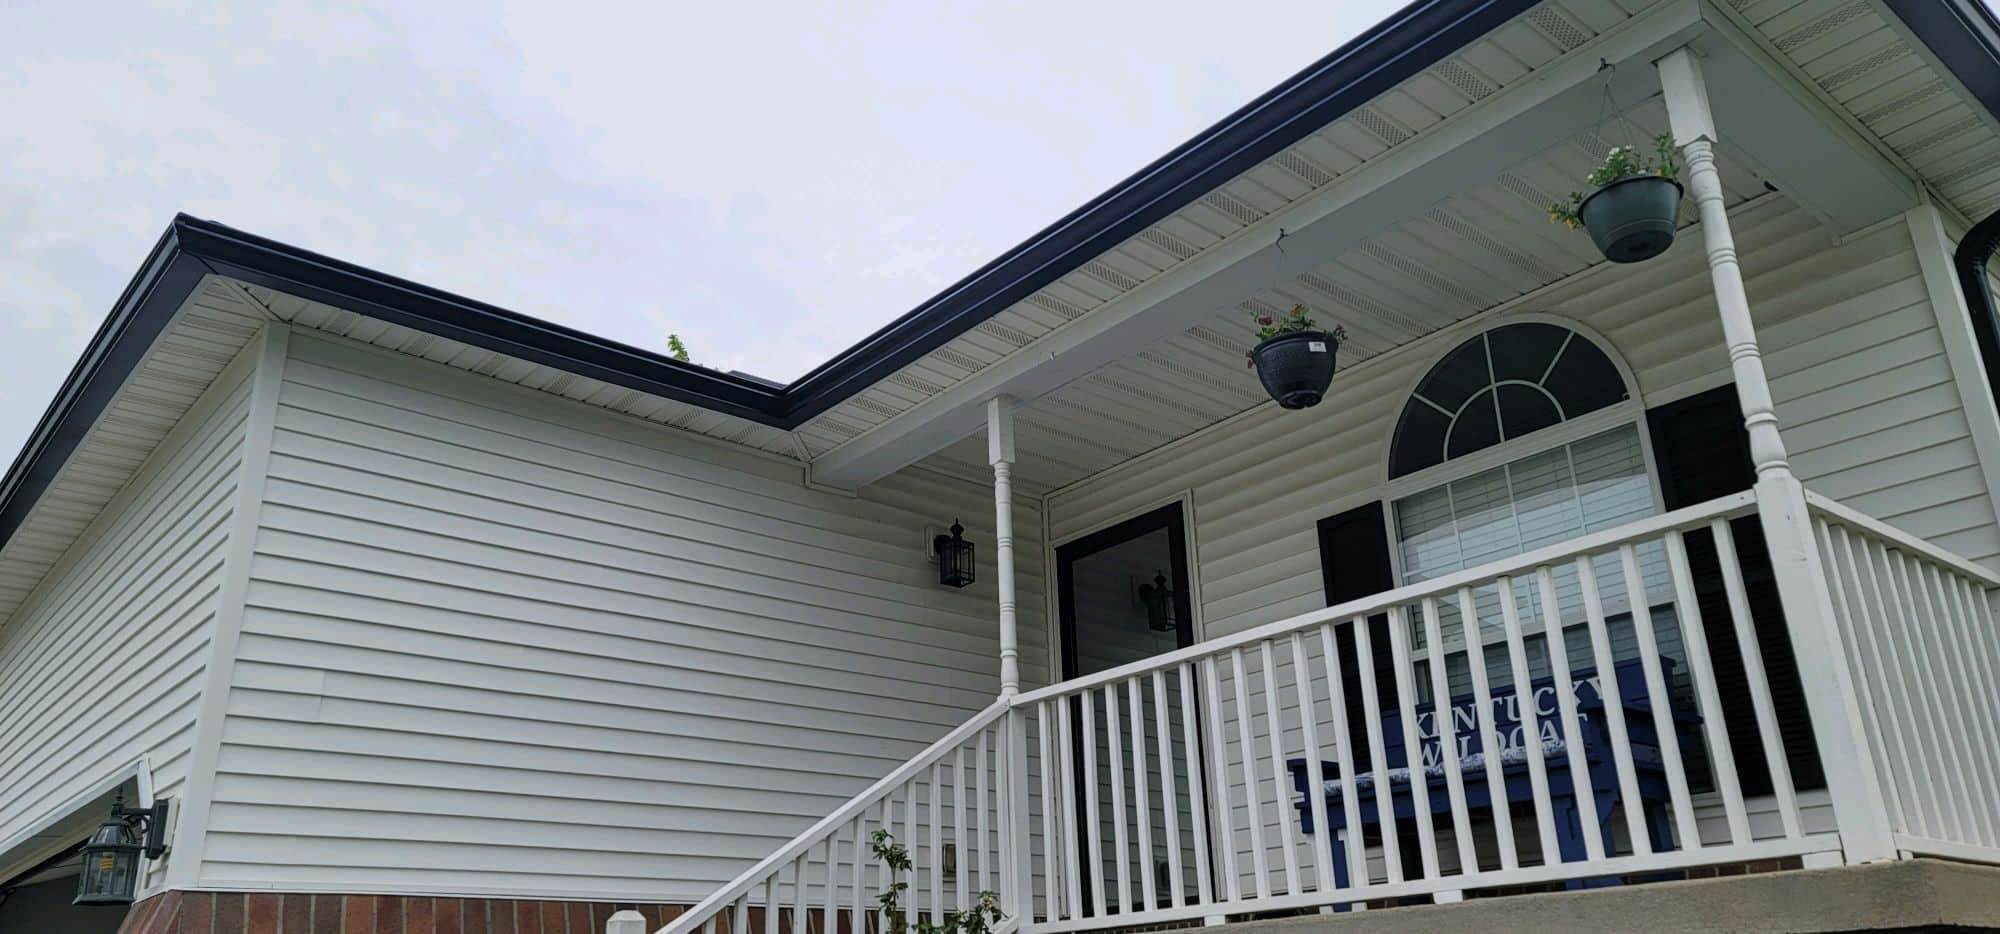 Gutters on new home